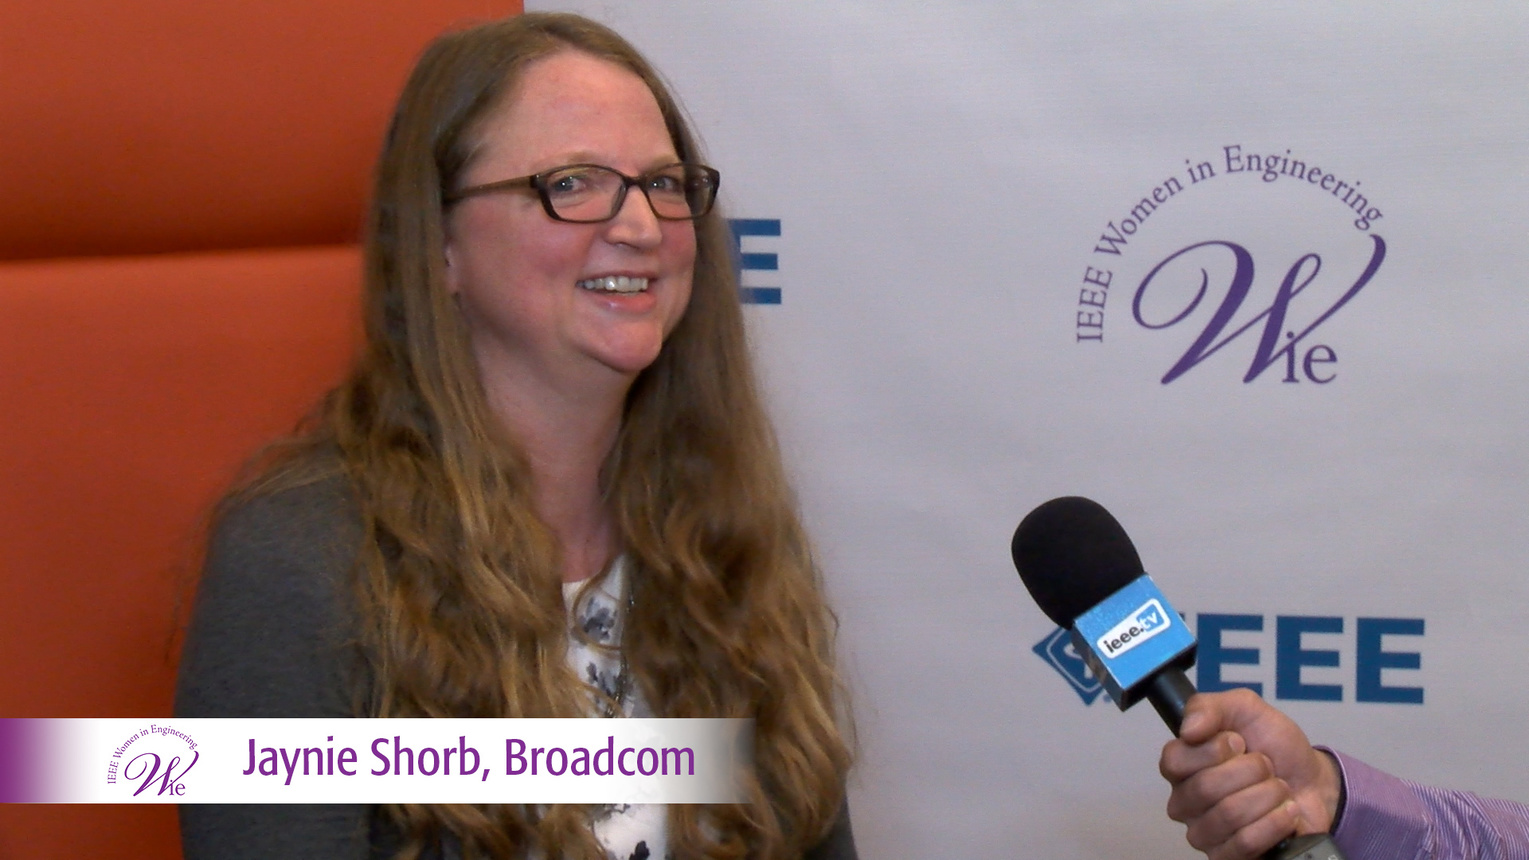 Jaynie Shorb from Broadcom at WIE ILC 2016